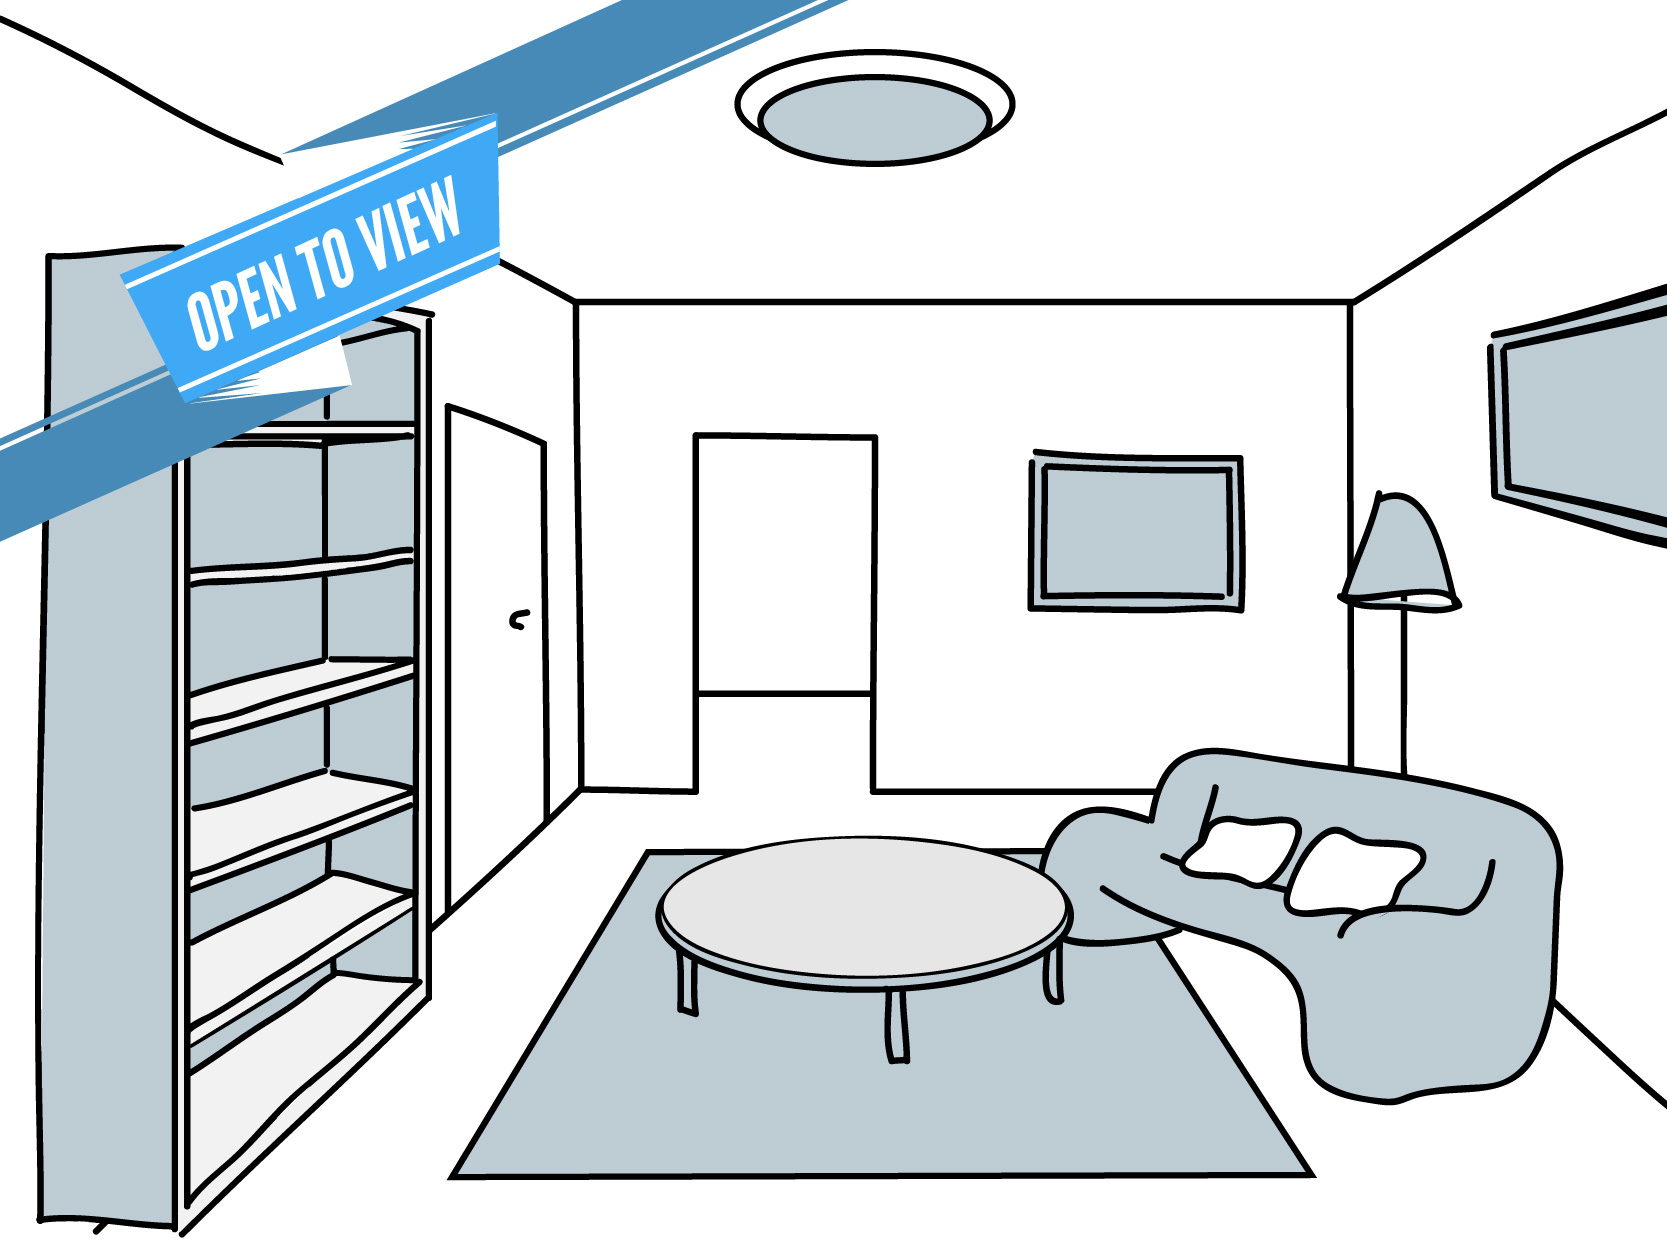 3. Once your furniture is in place, you are free to make changes as you please.